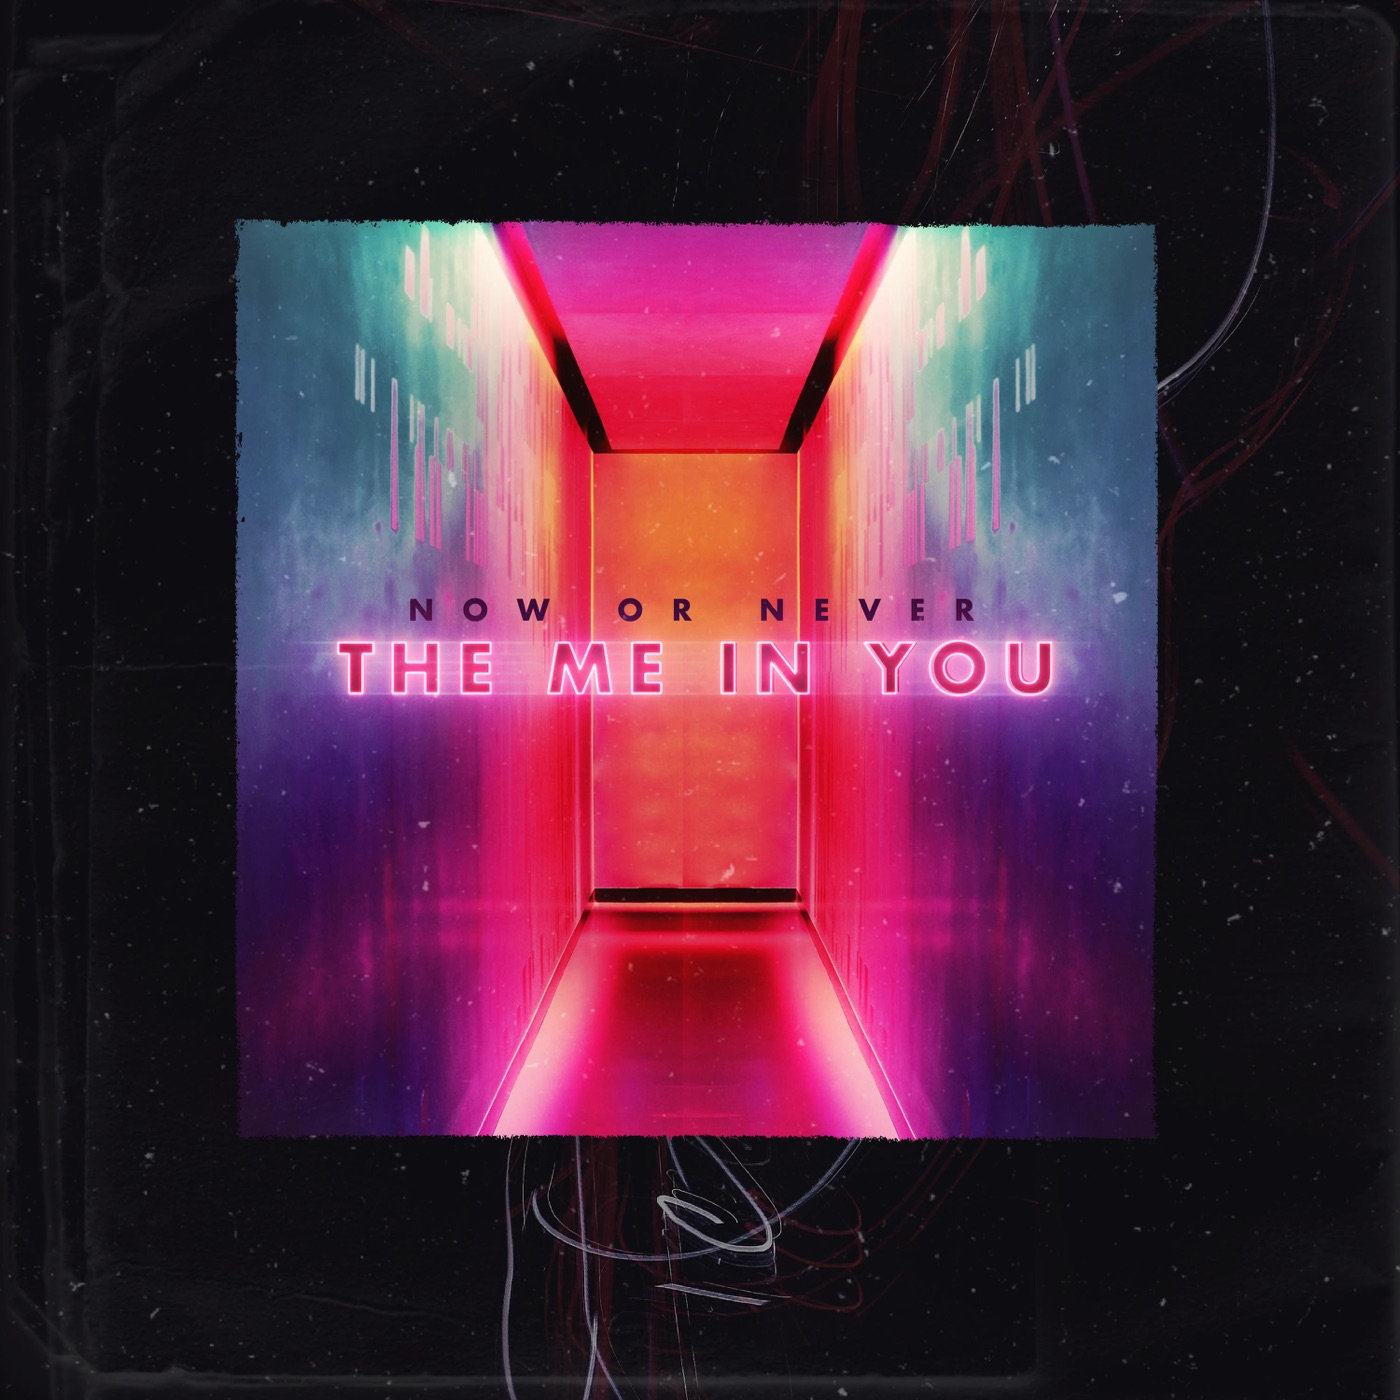 Now or Never - The Me in You [Single] (2019)